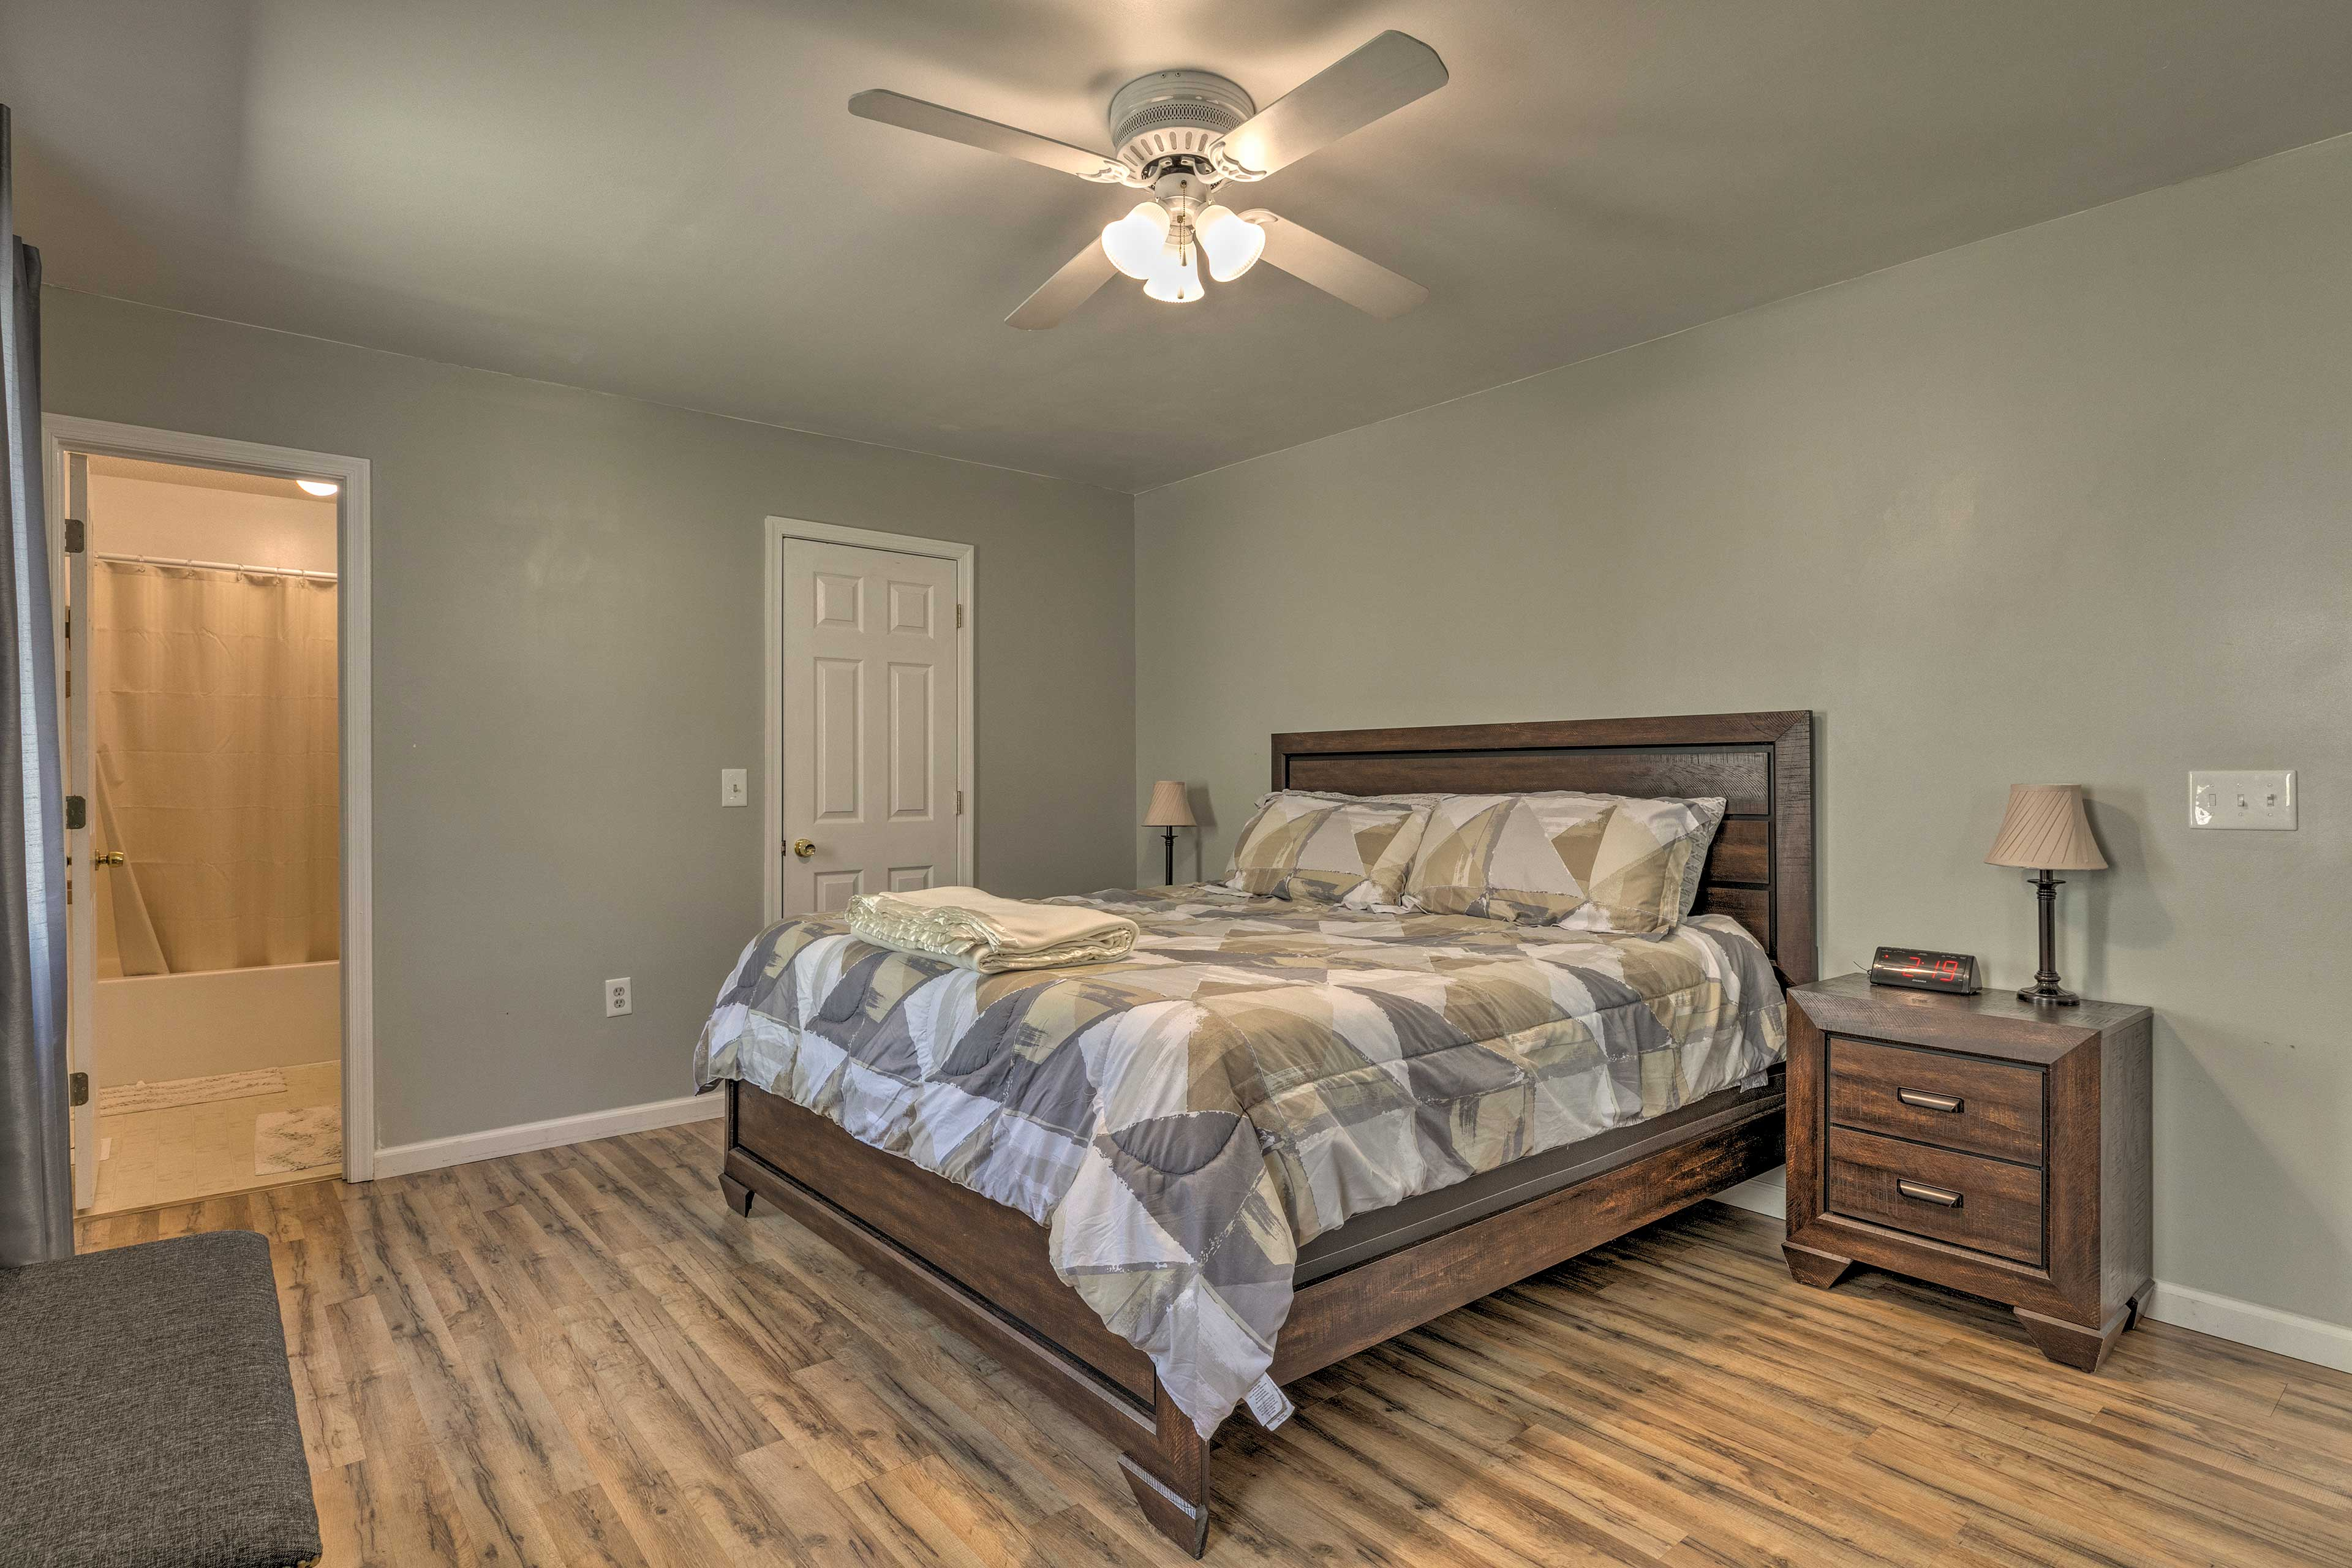 Settle in one of the 4 bedrooms.